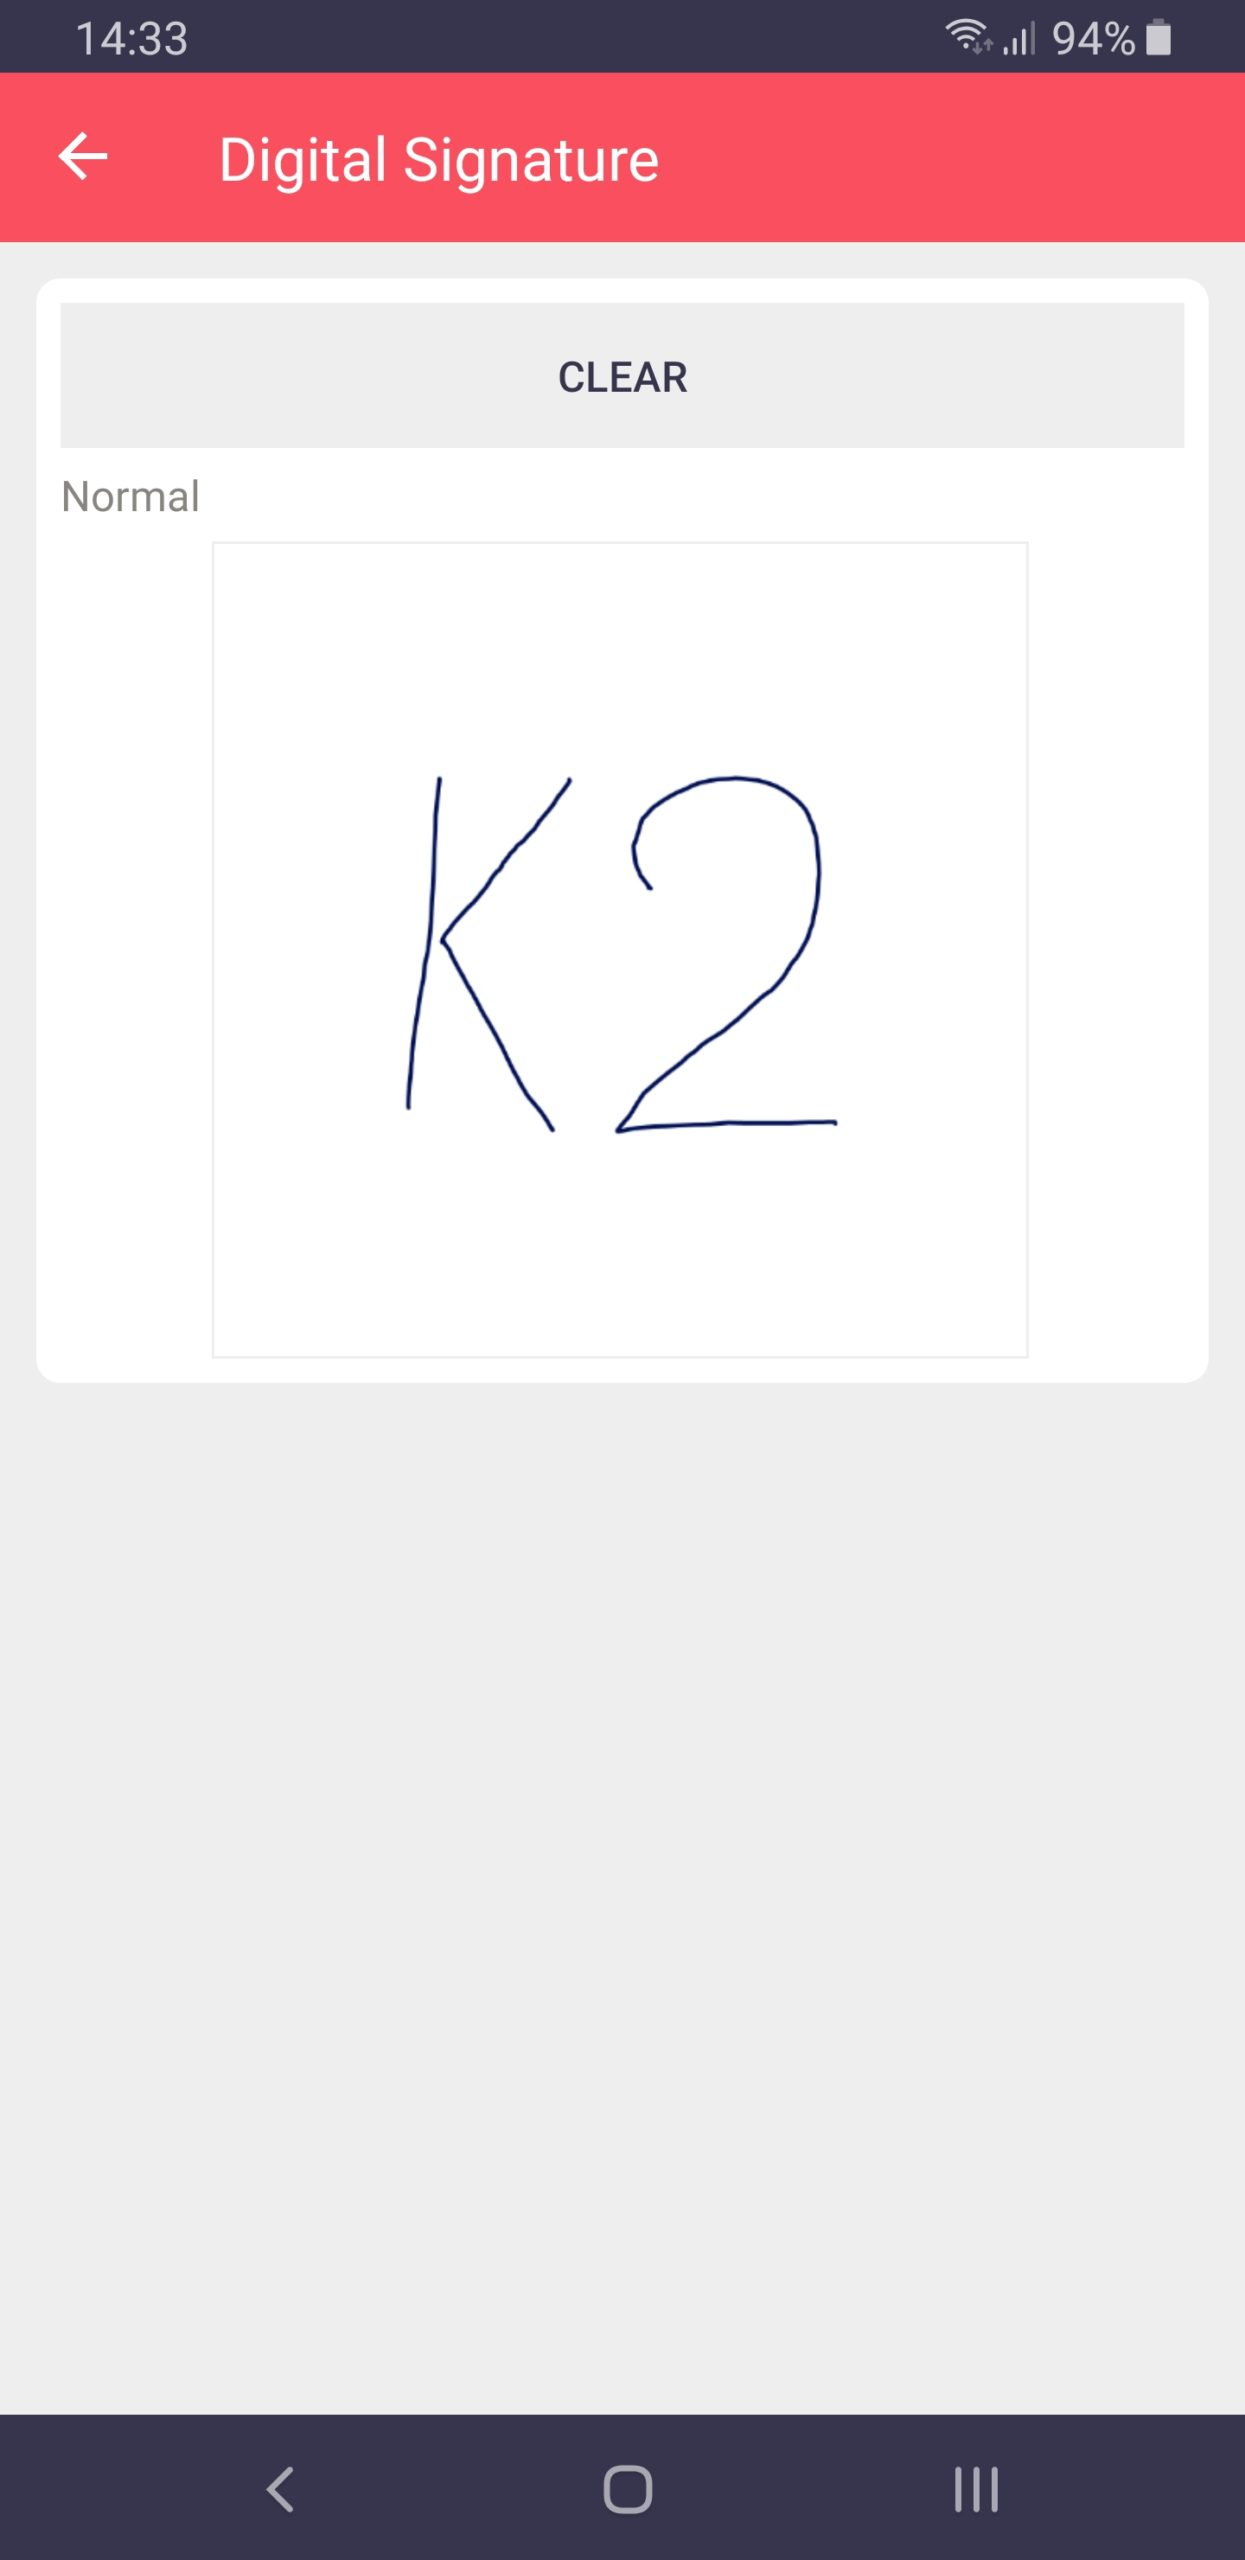 Filled Digital Signature on Android